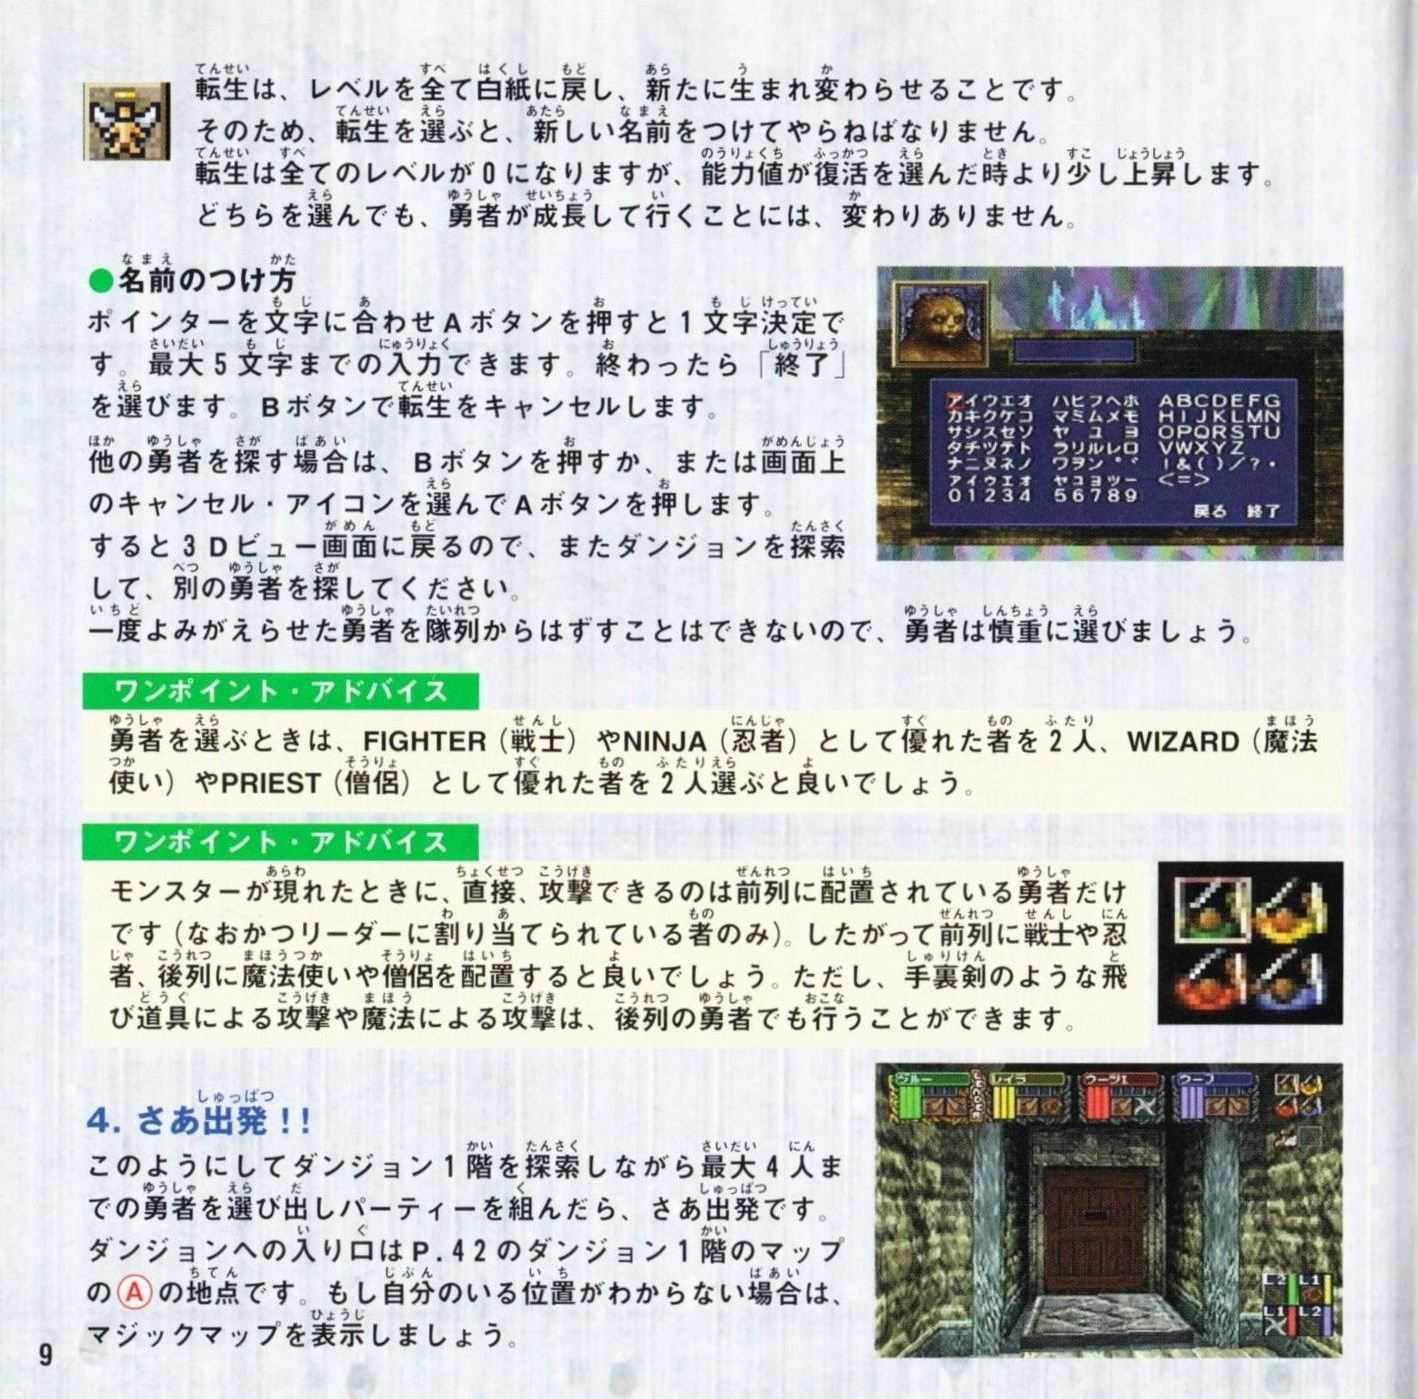 Game - Dungeon Master Nexus - JP - Sega Saturn - Booklet - Page 010 - Scan